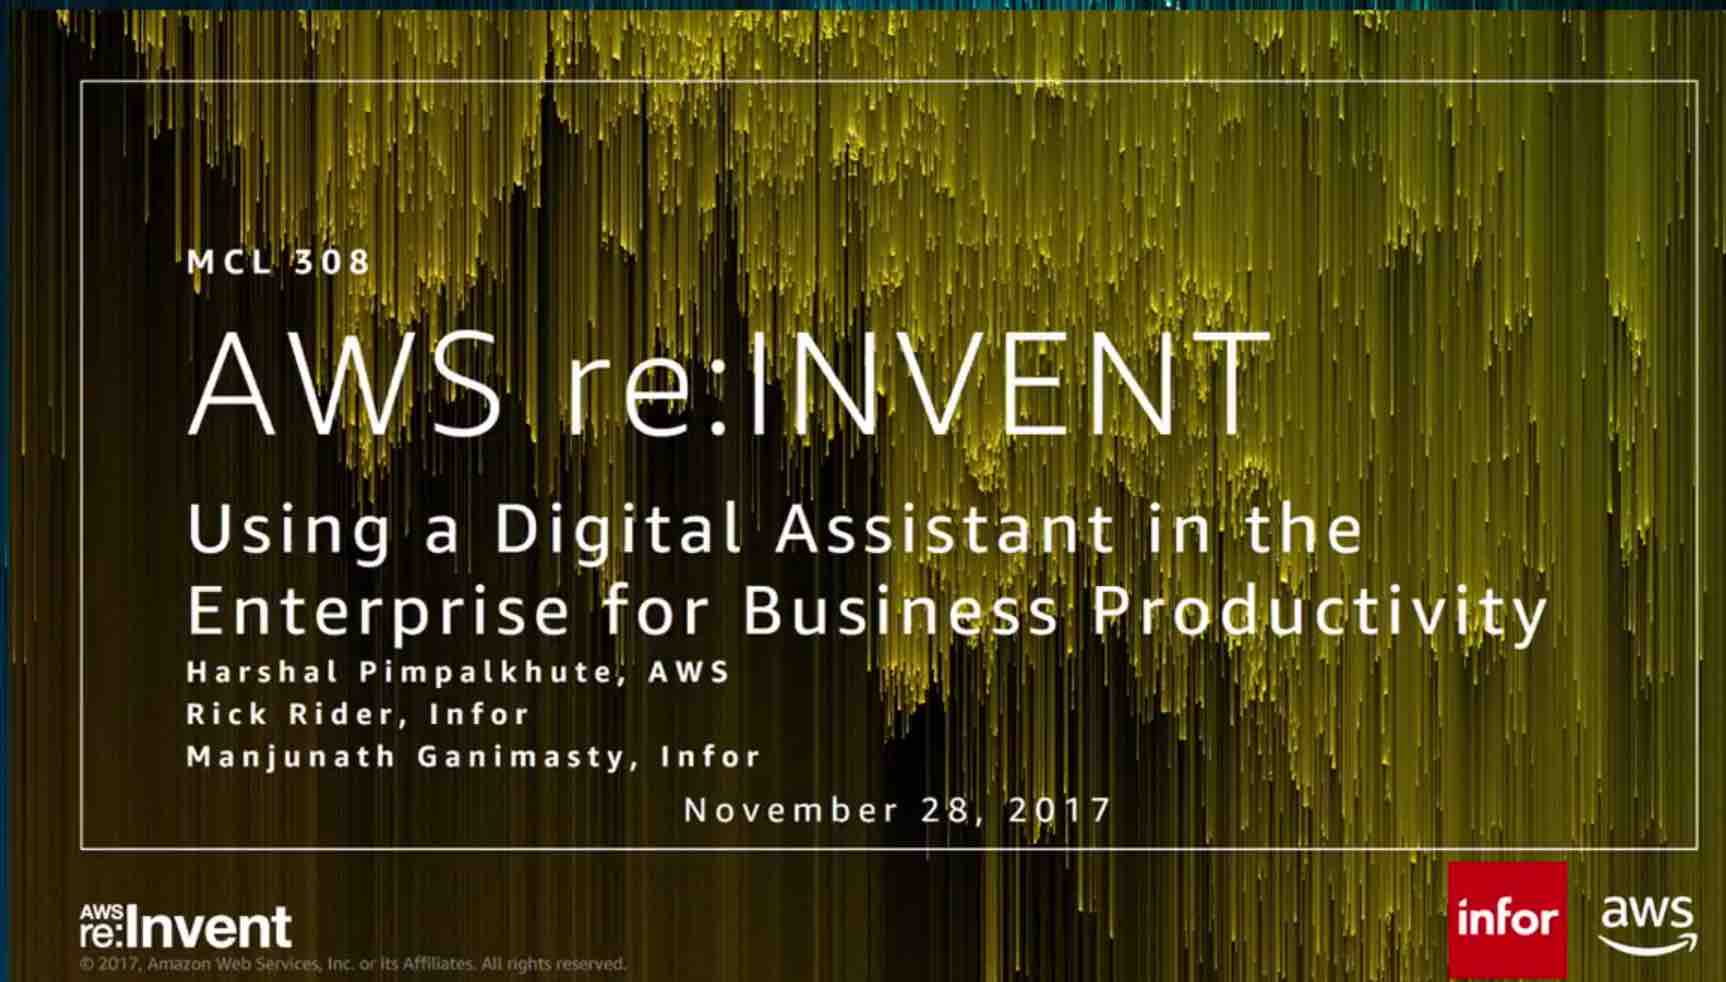 Using a Digital Assistant in the Enterprise for Business Productivity